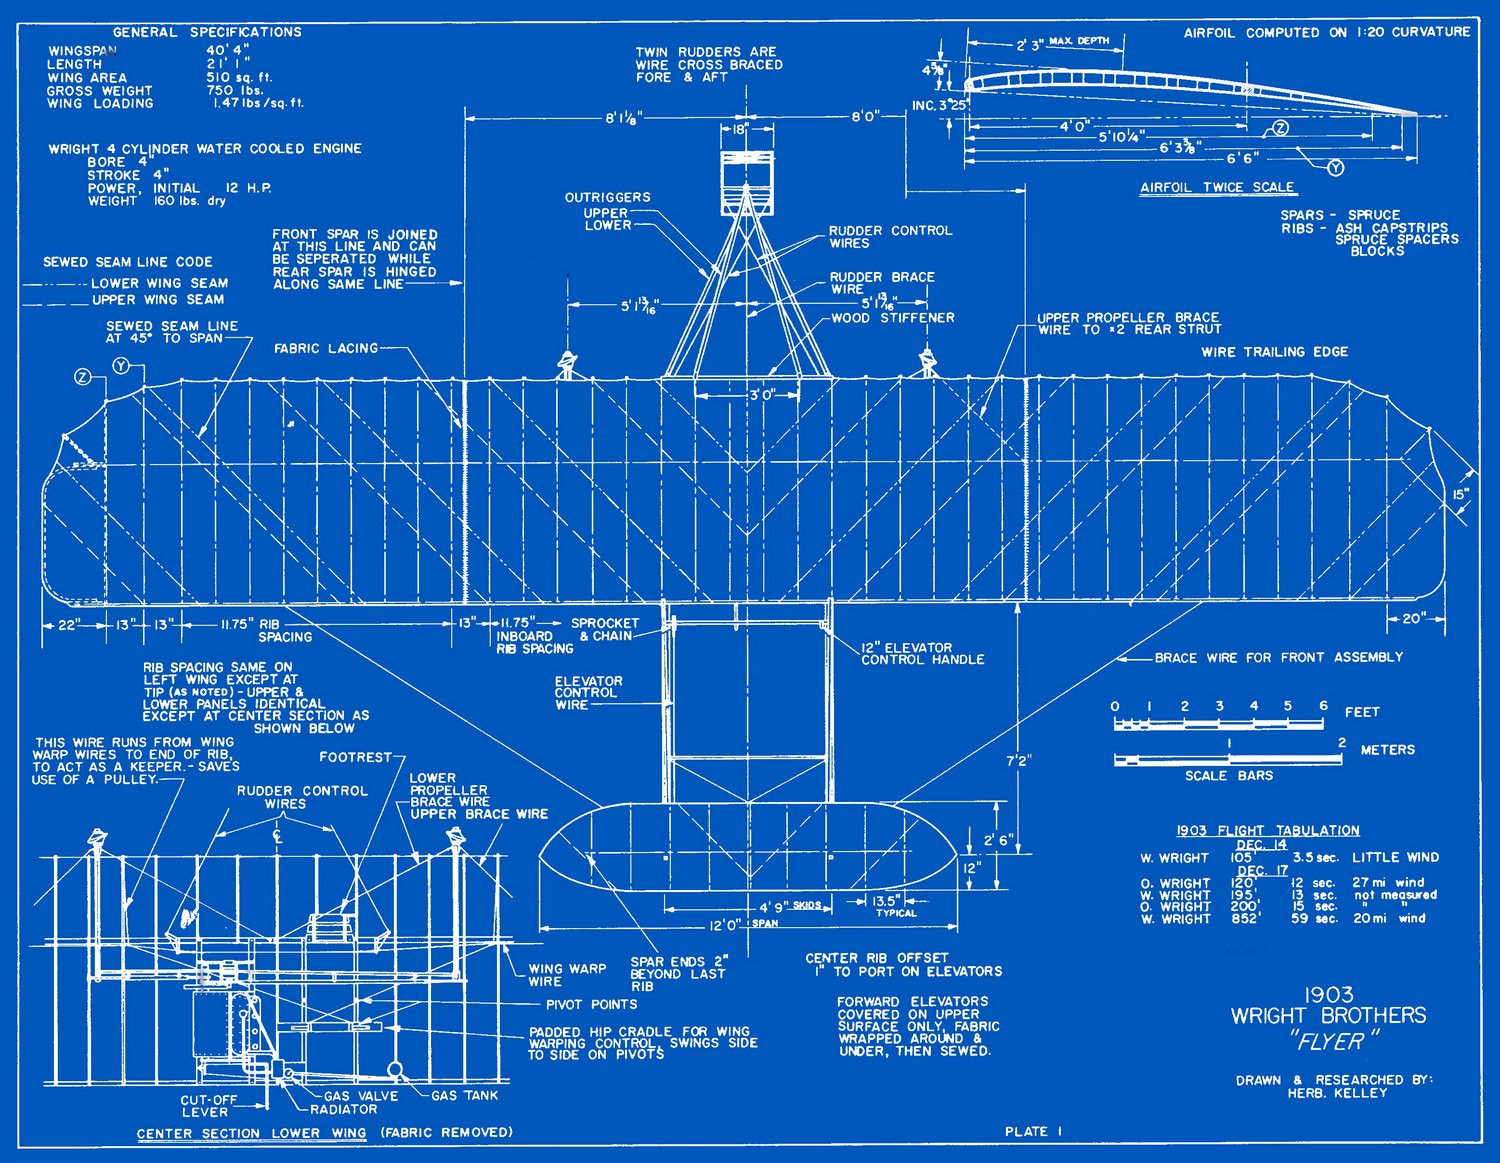 1903 wright flyer blueprints free download for Blueprint of a house with measurements